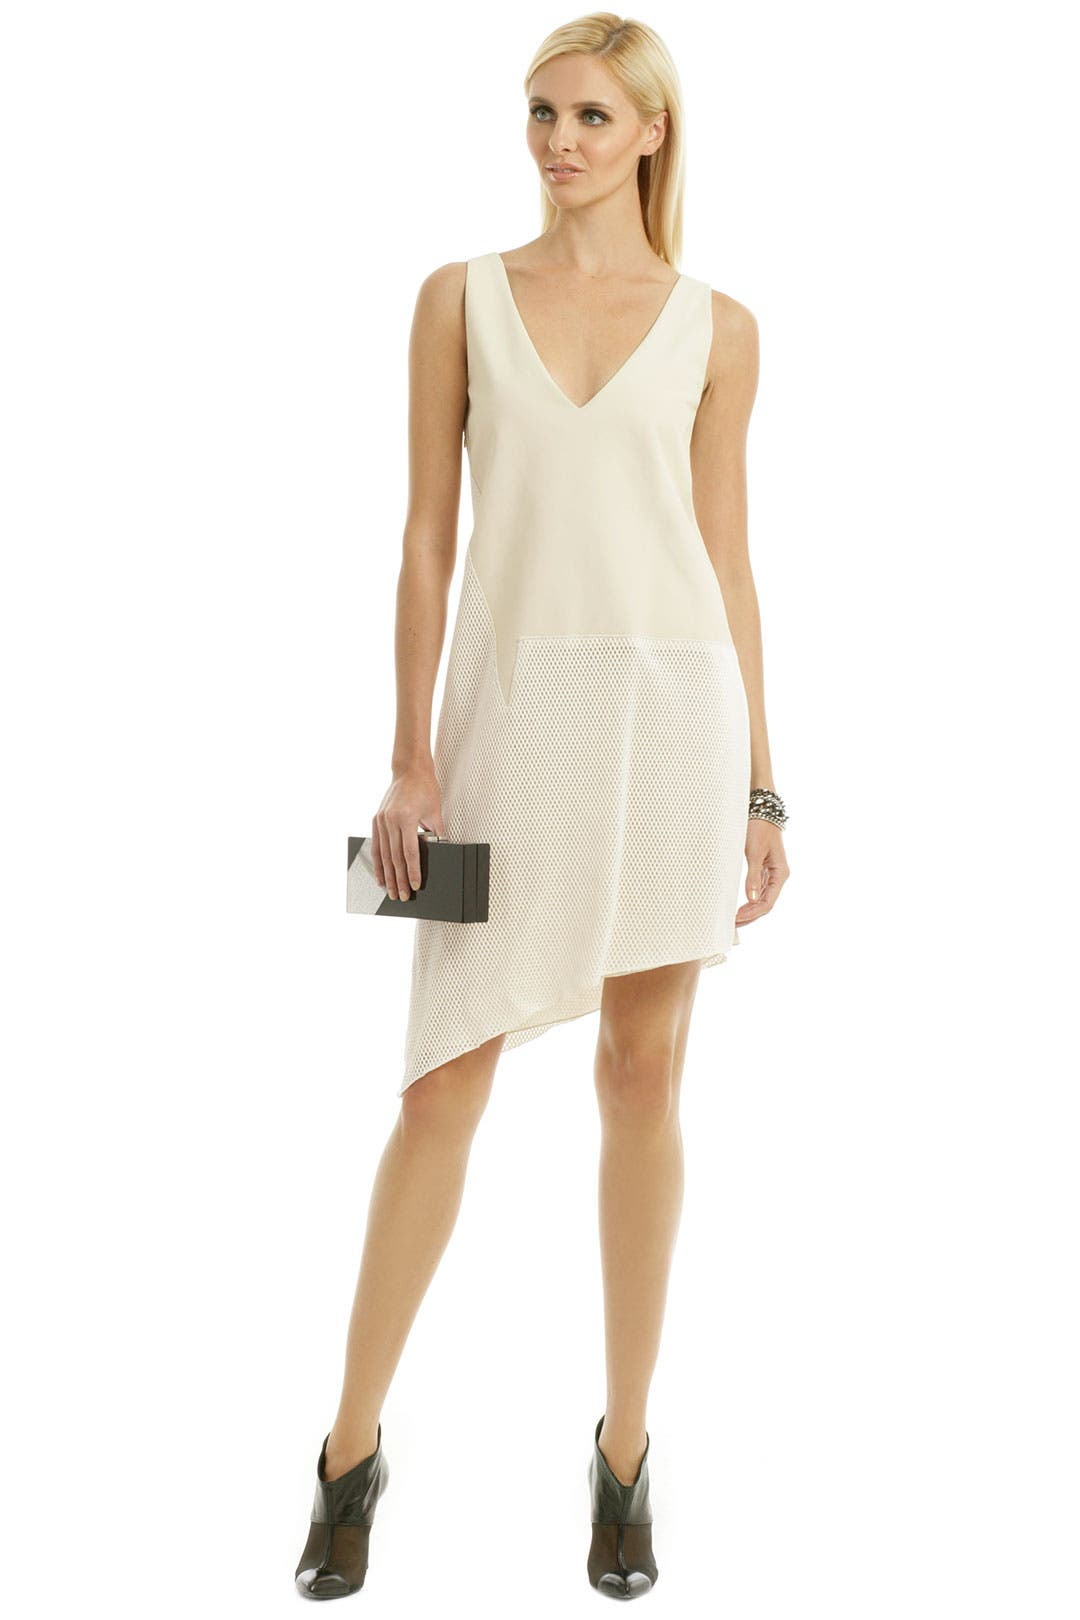 Goetz Dress by rag & bone